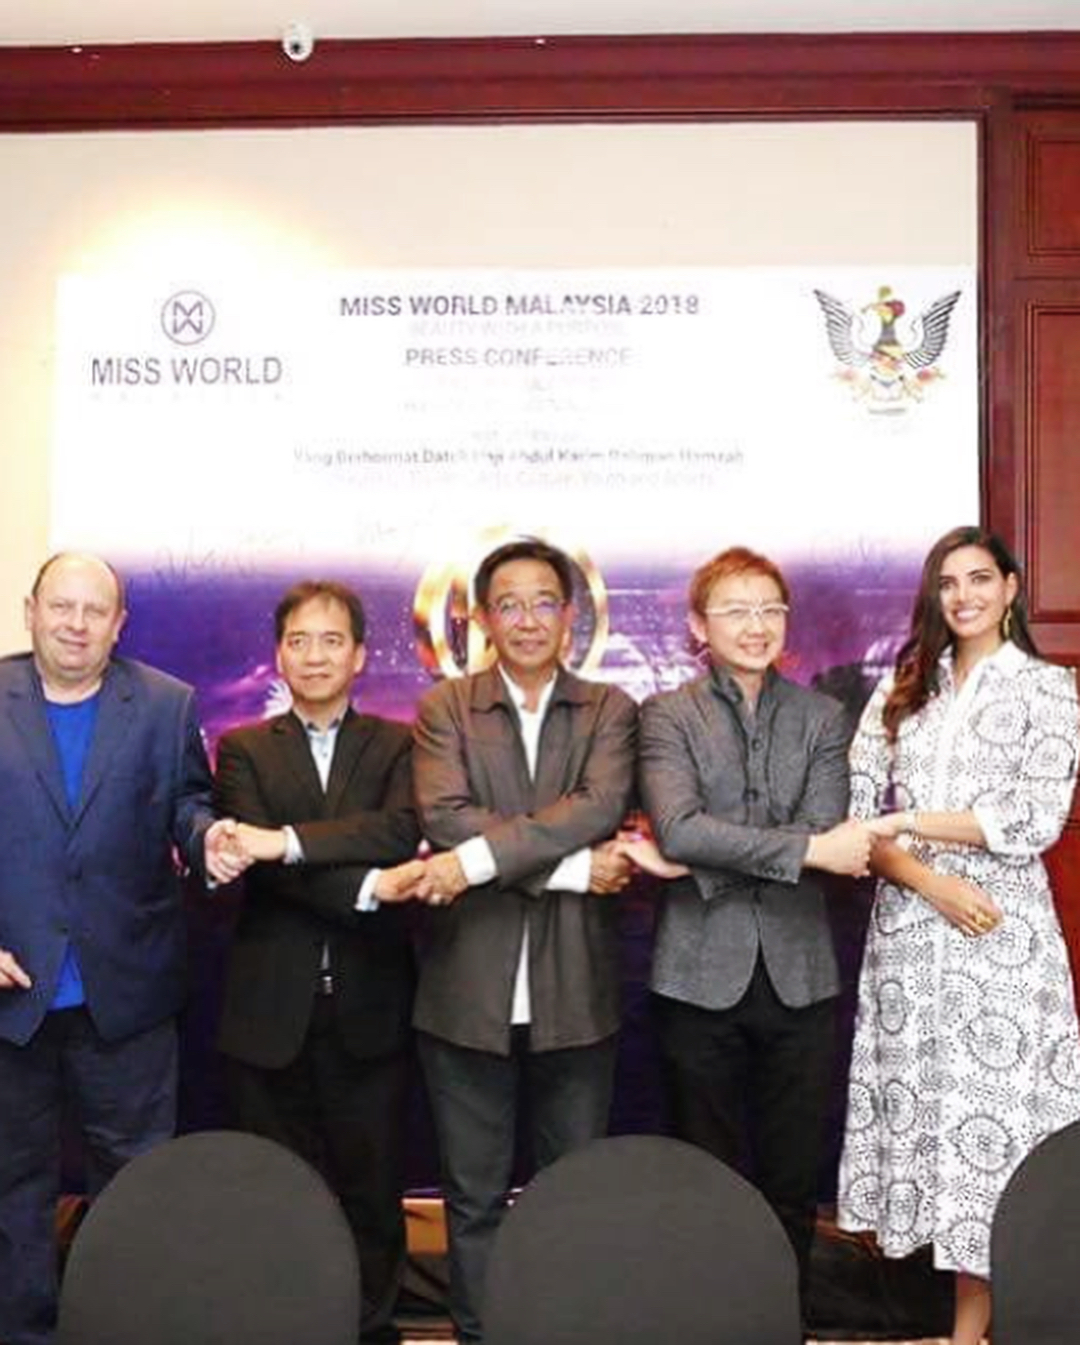 miss world 2016 durante conferencia de press de miss world malaysia 2018. K3qm7xl7